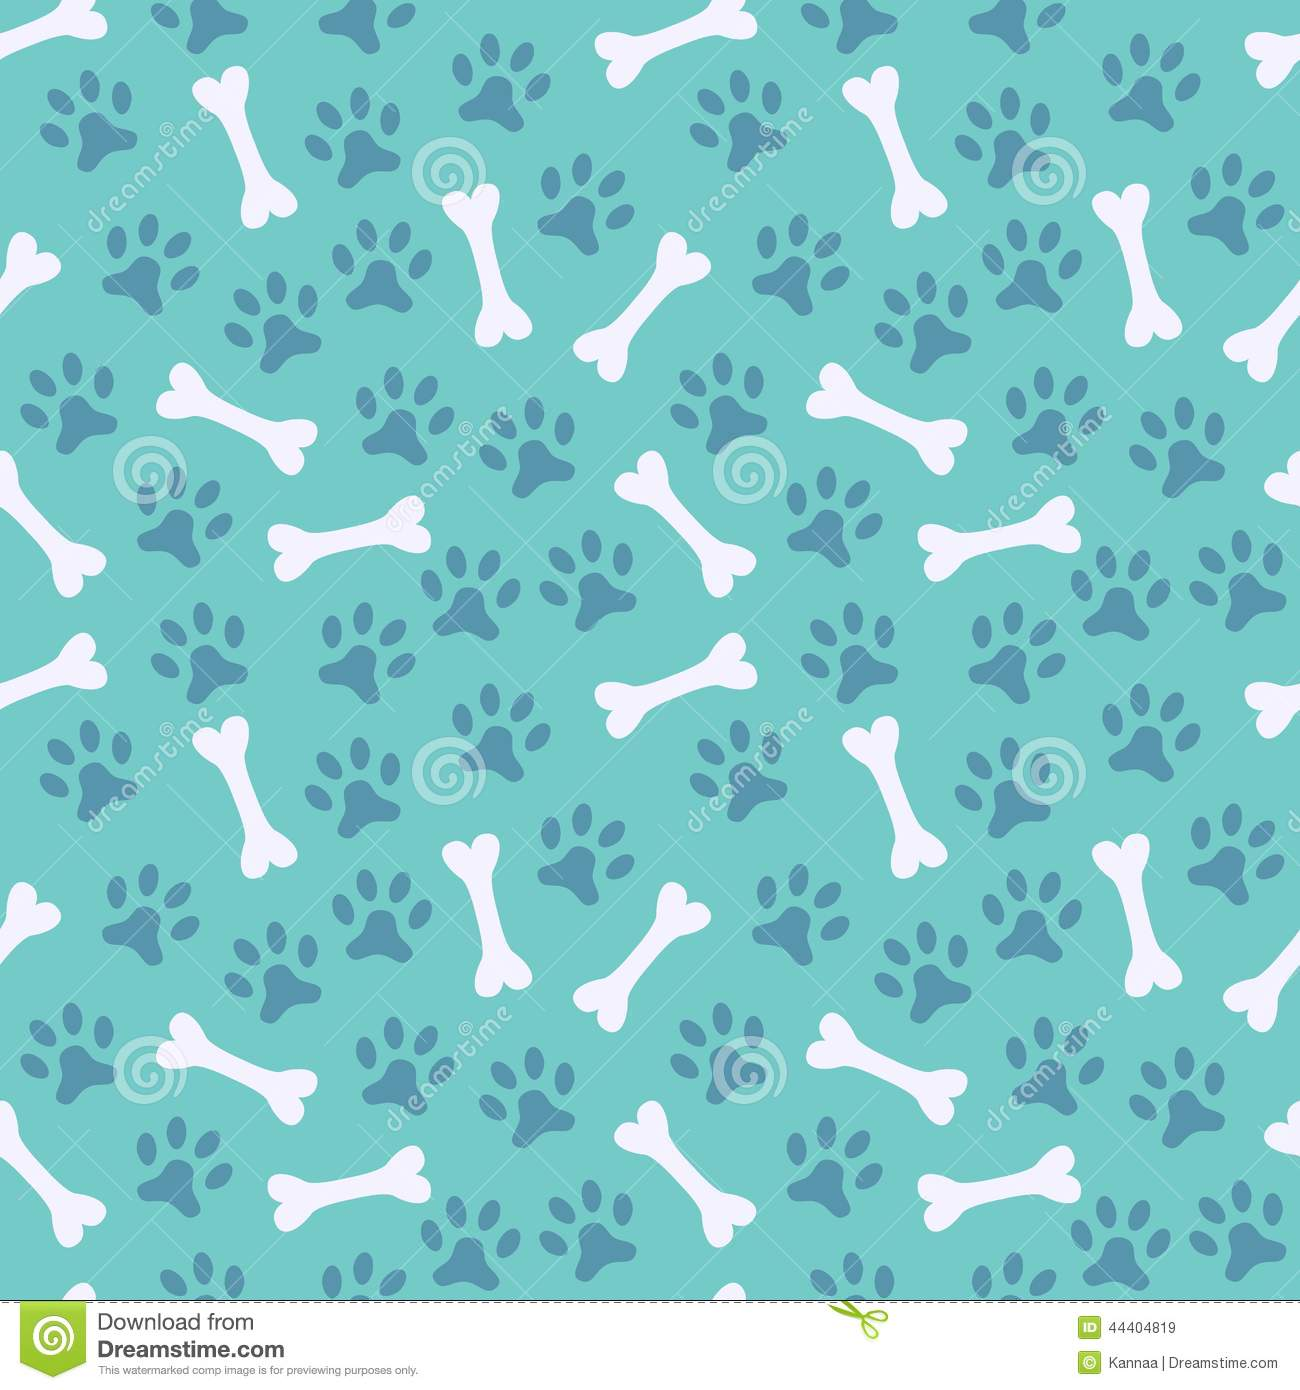 Dog Bone Backgrounds 54 Wallpapers  HD Wallpapers